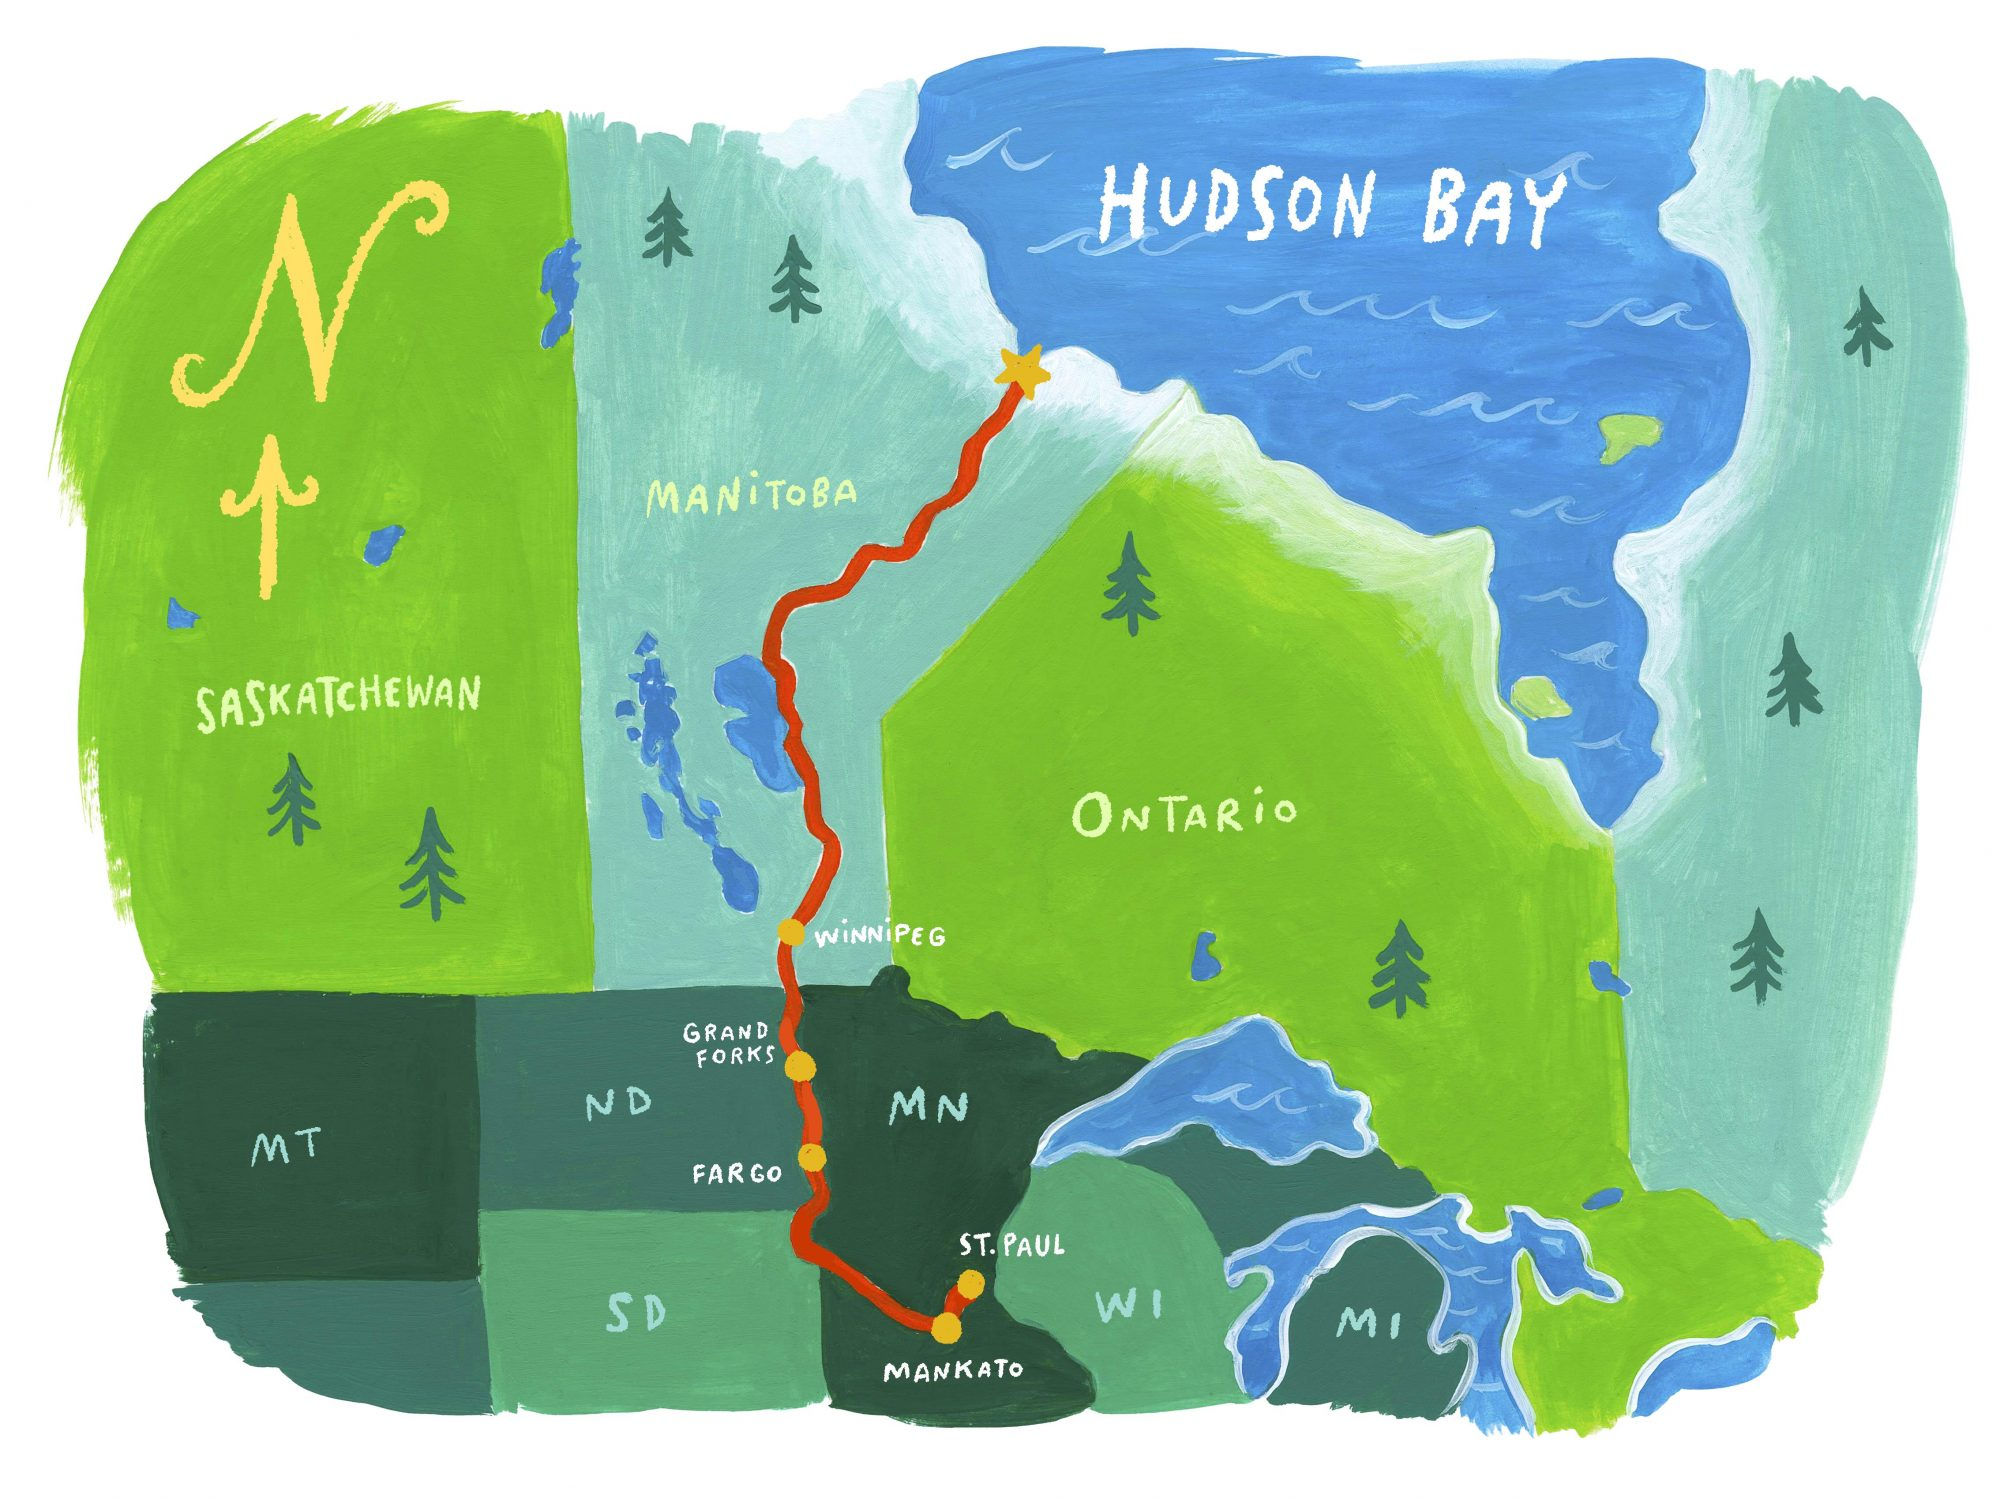 Hudson Bay Bound illustration